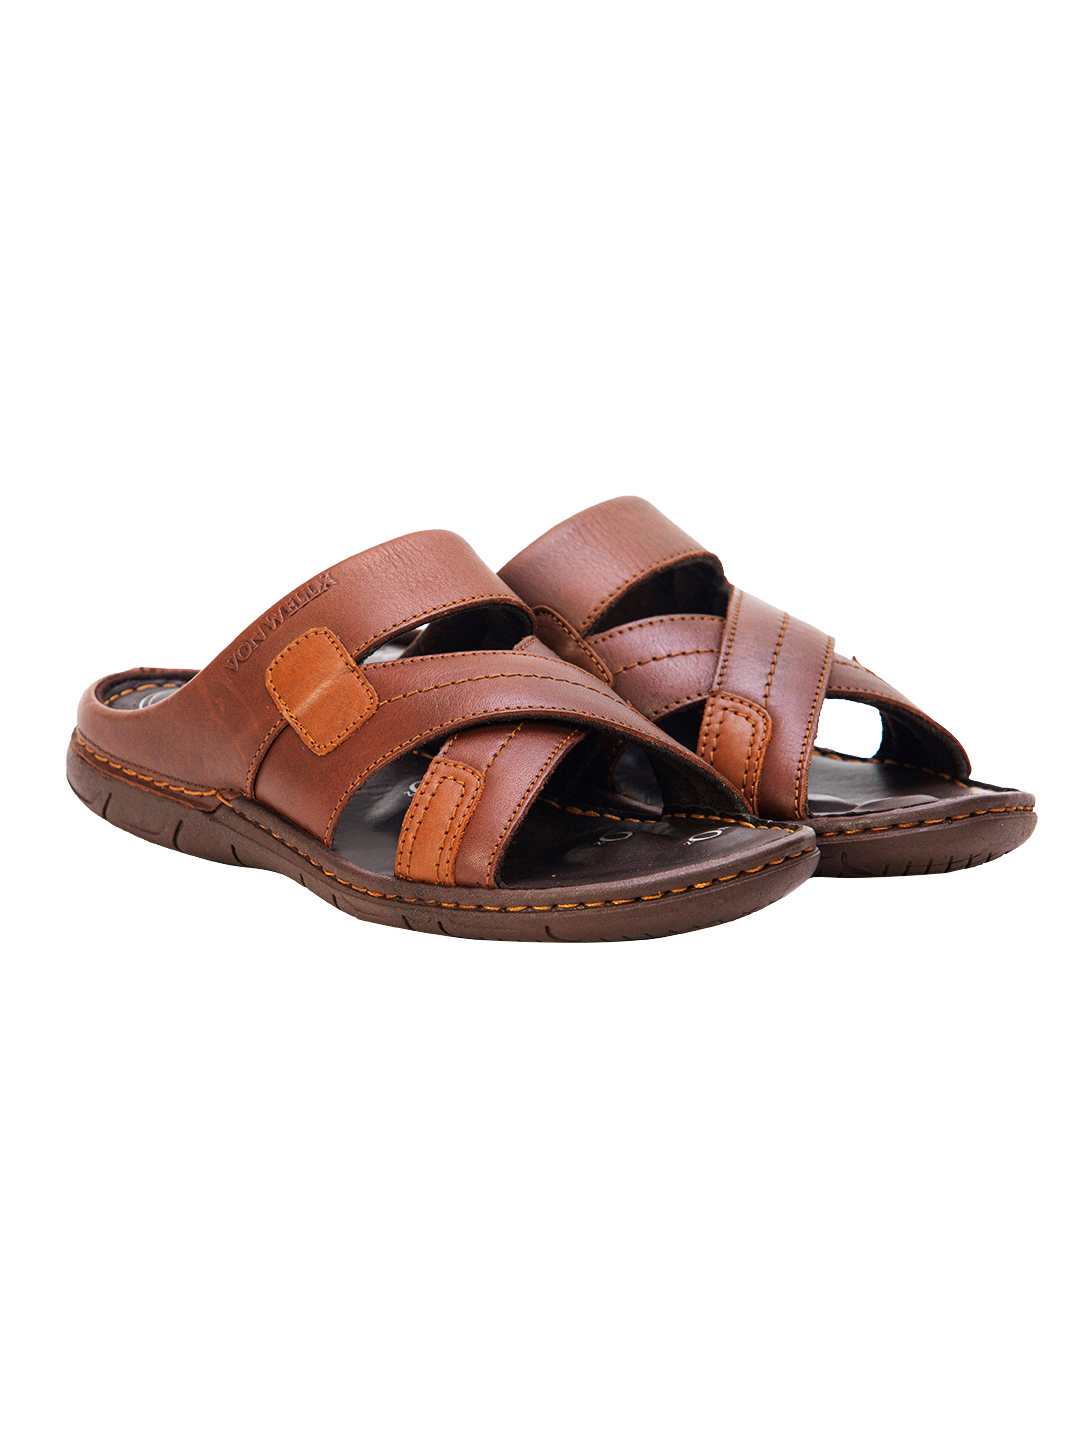 Buy VON WELLX GERMANY COMFORT ROVE BROWN SLIPPERS In Delhi